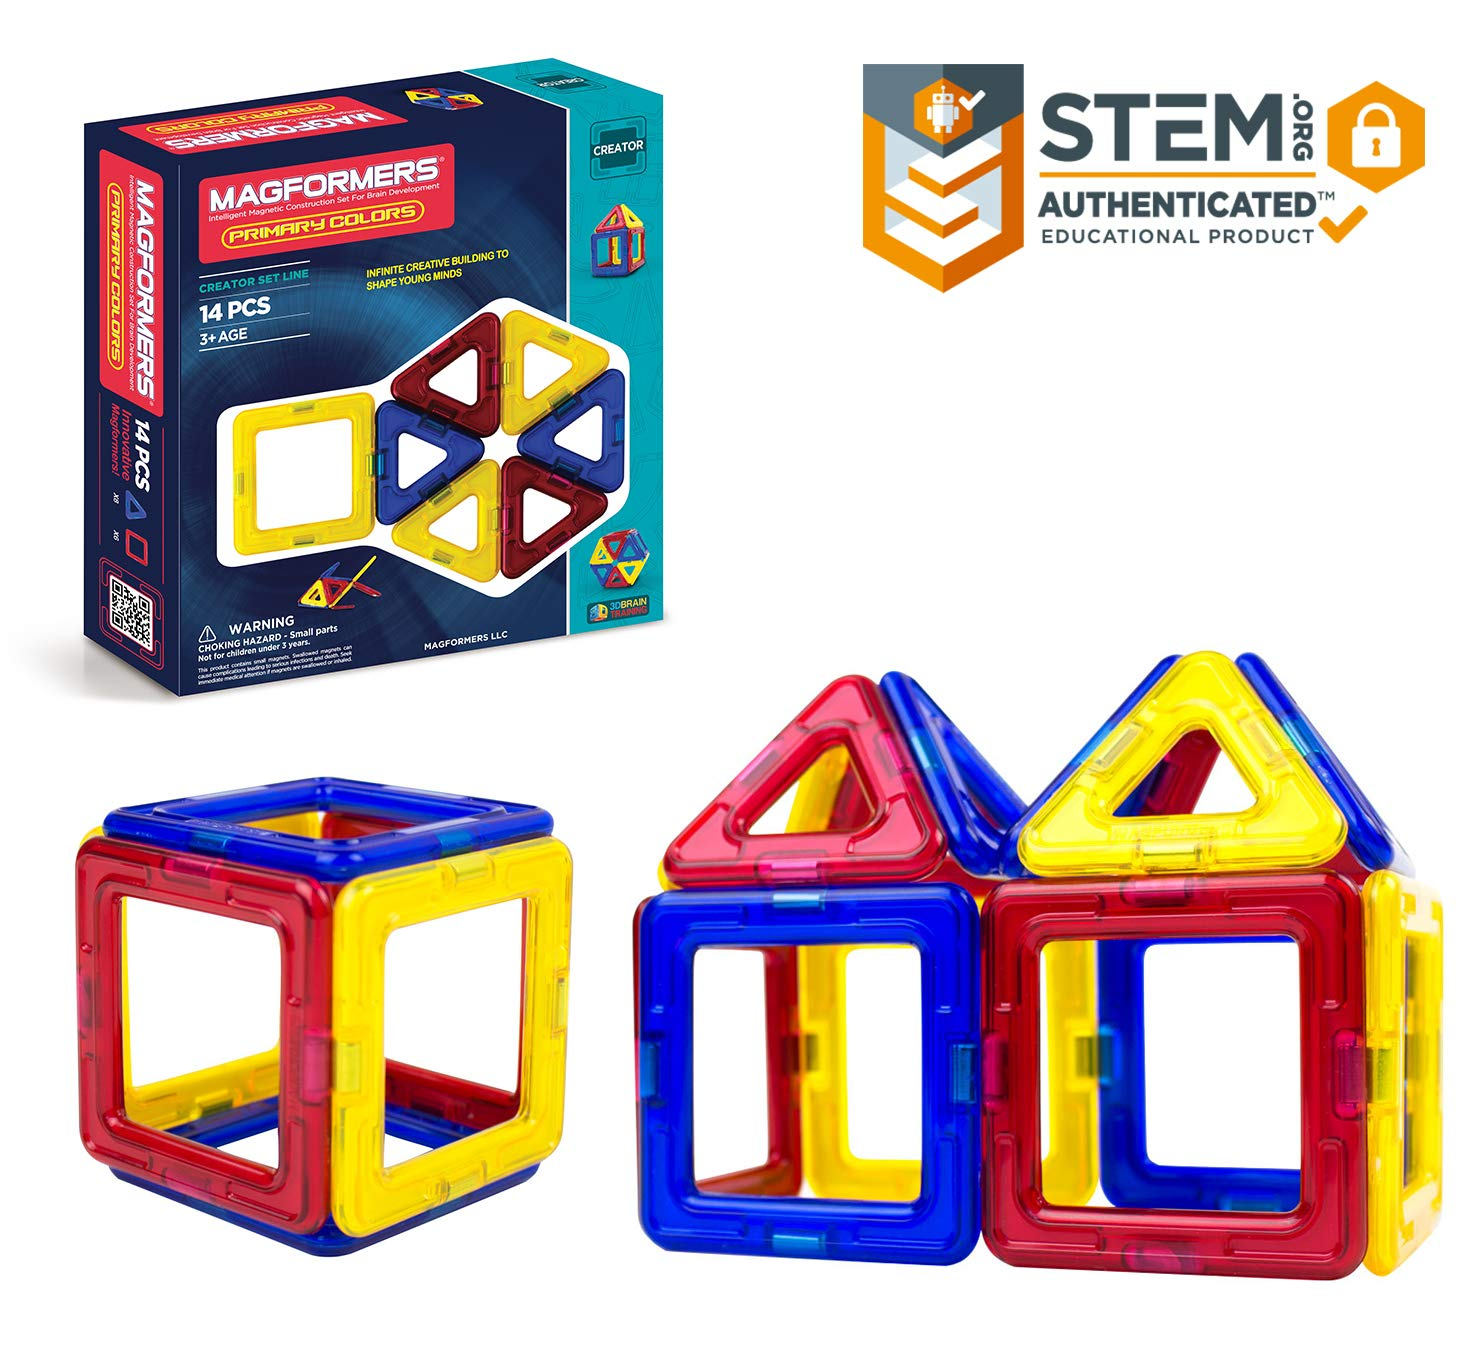 Magformers Creator Primary Colors Set (14-Pieces) Magnetic Building Blocks, Educational Magnetic Tiles Kit , Magnetic Construction STEM Set